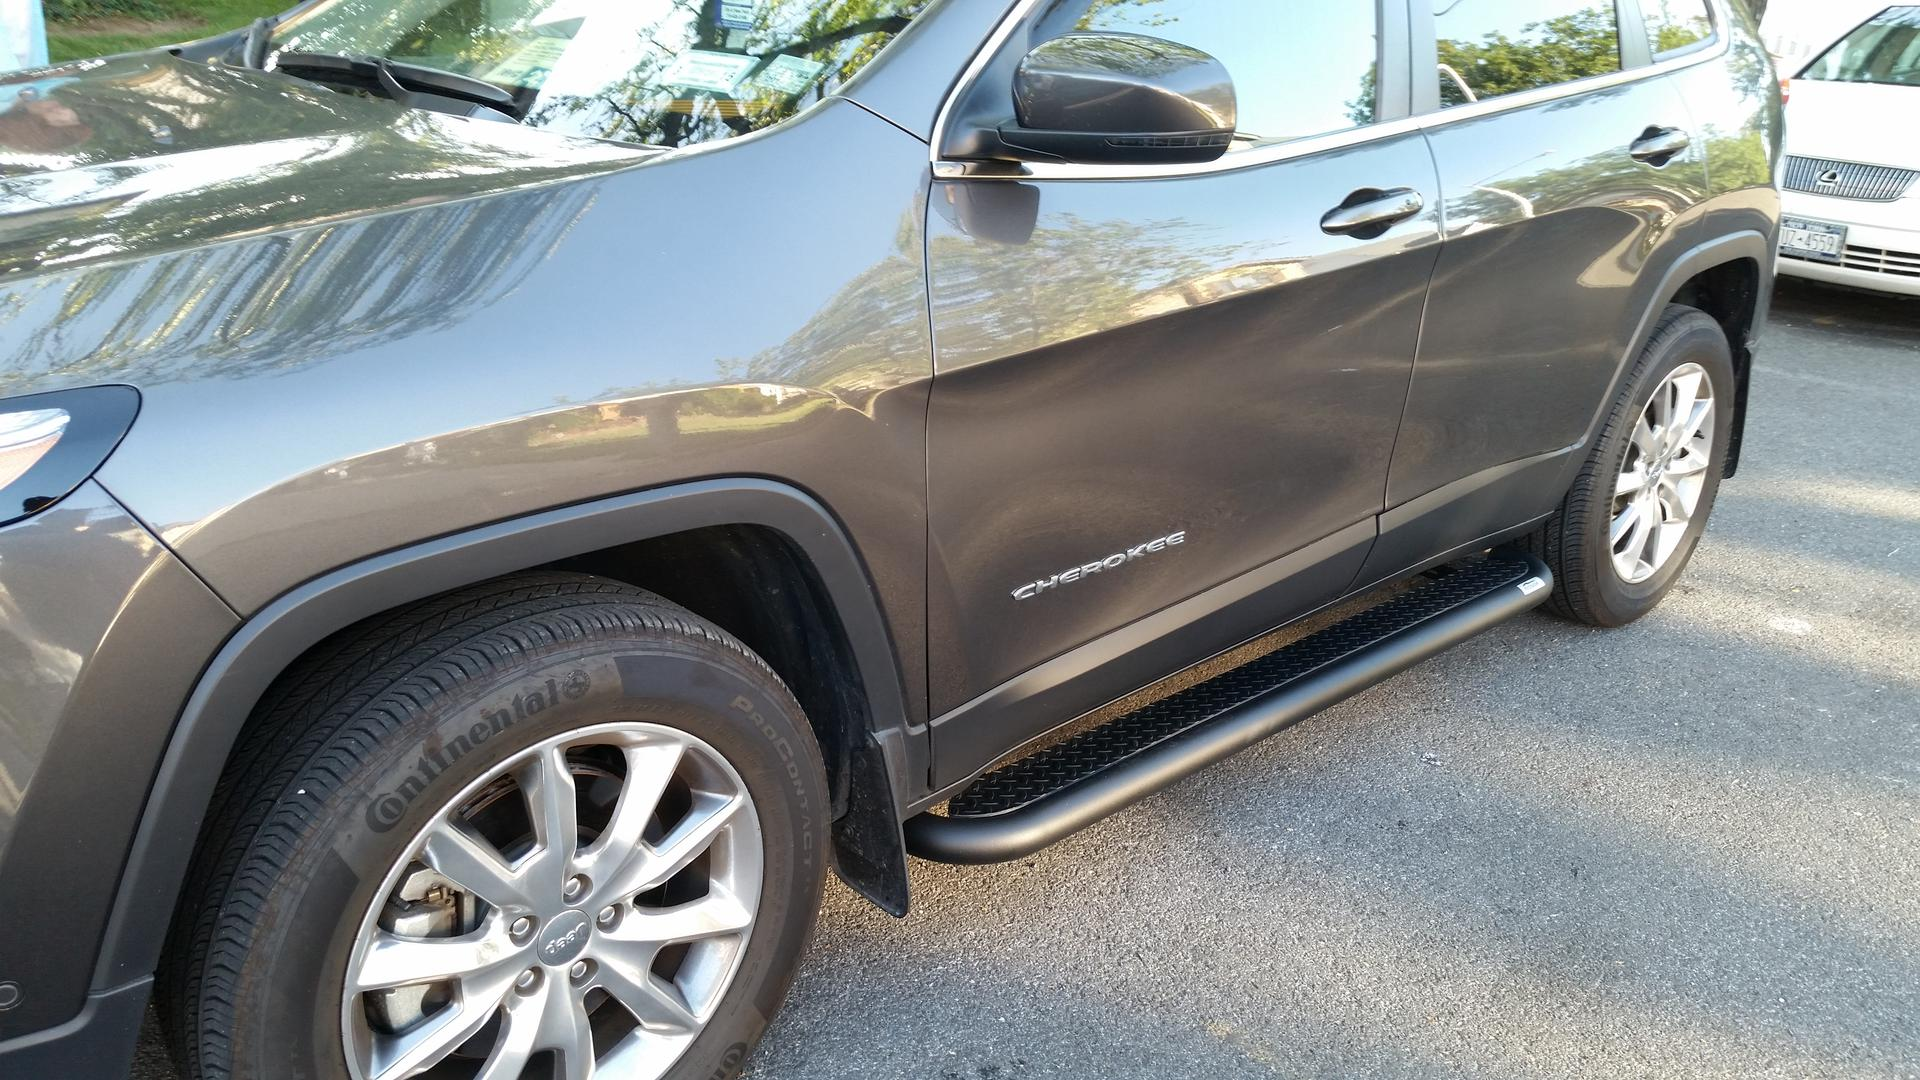 running boards now available - 2014+ jeep cherokee forums